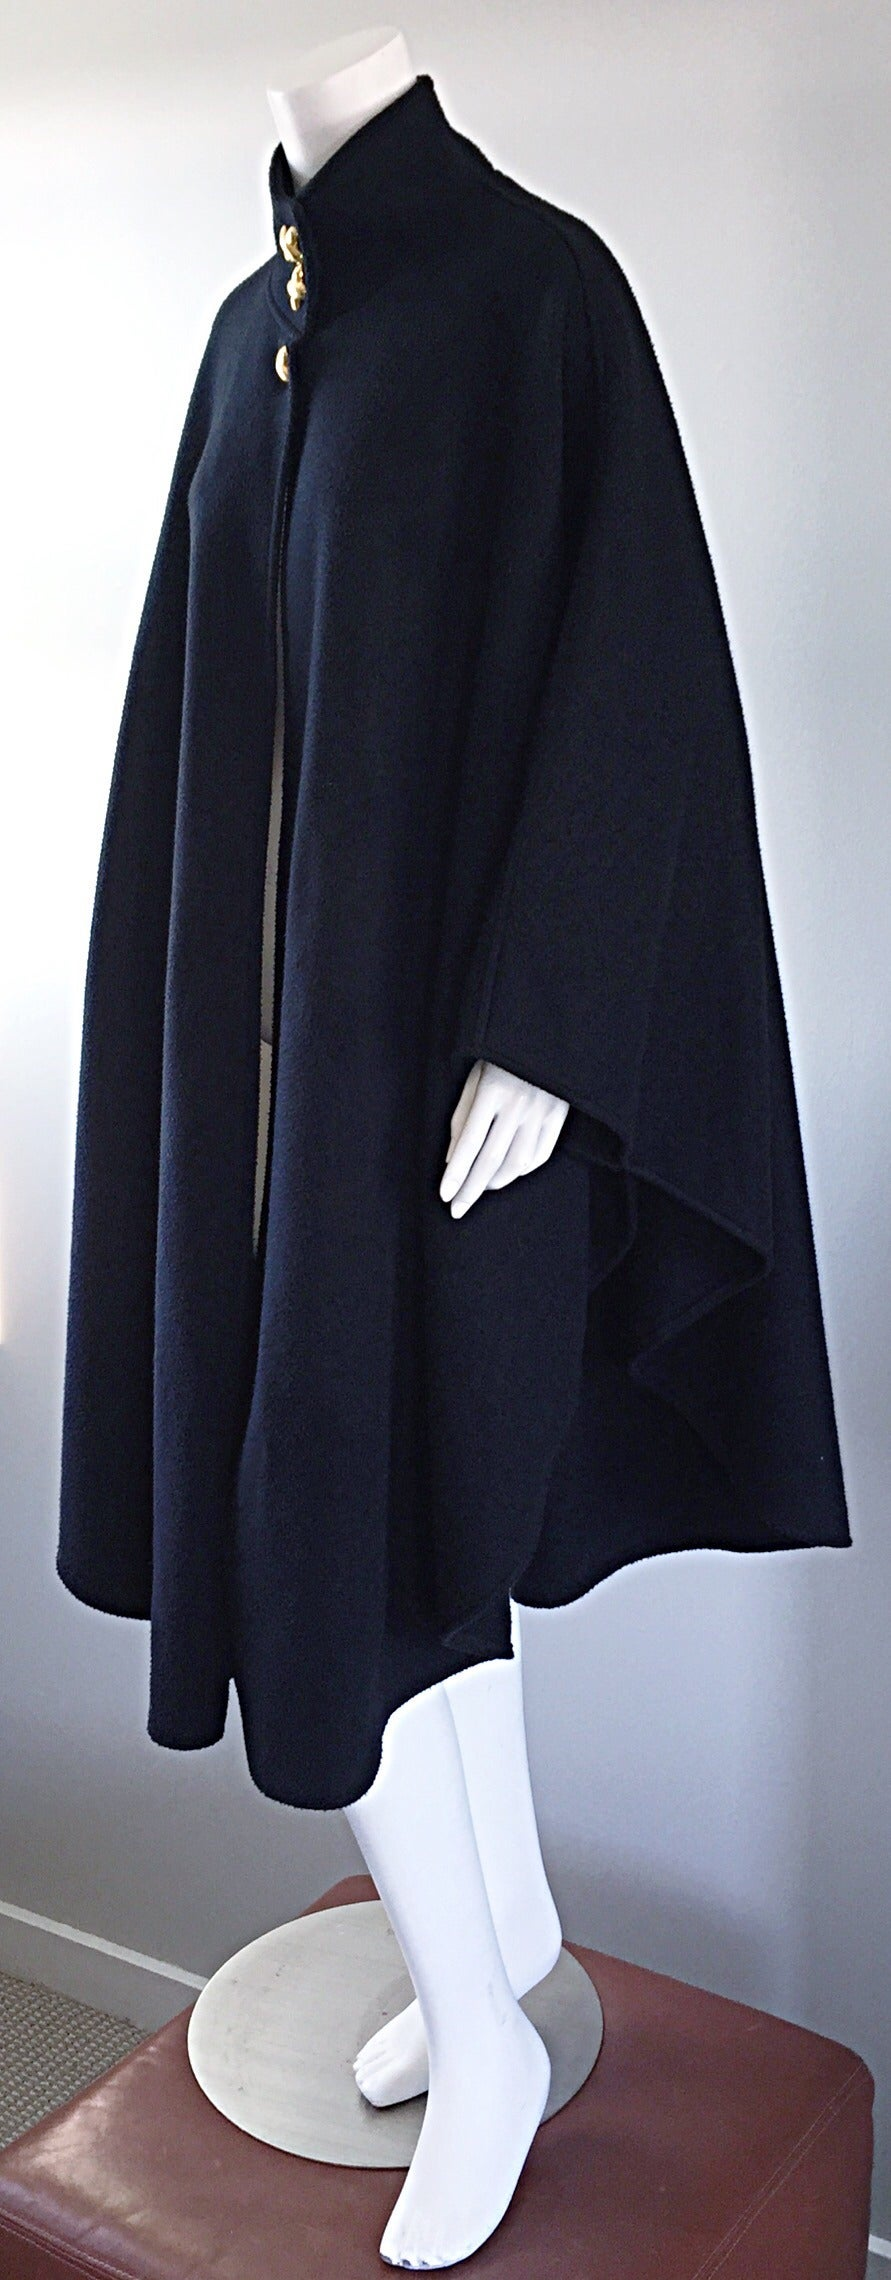 Vintage Lord & Taylor Black Fleece Cape Jacket w/ Gold ' Picasso ' Buttons 7